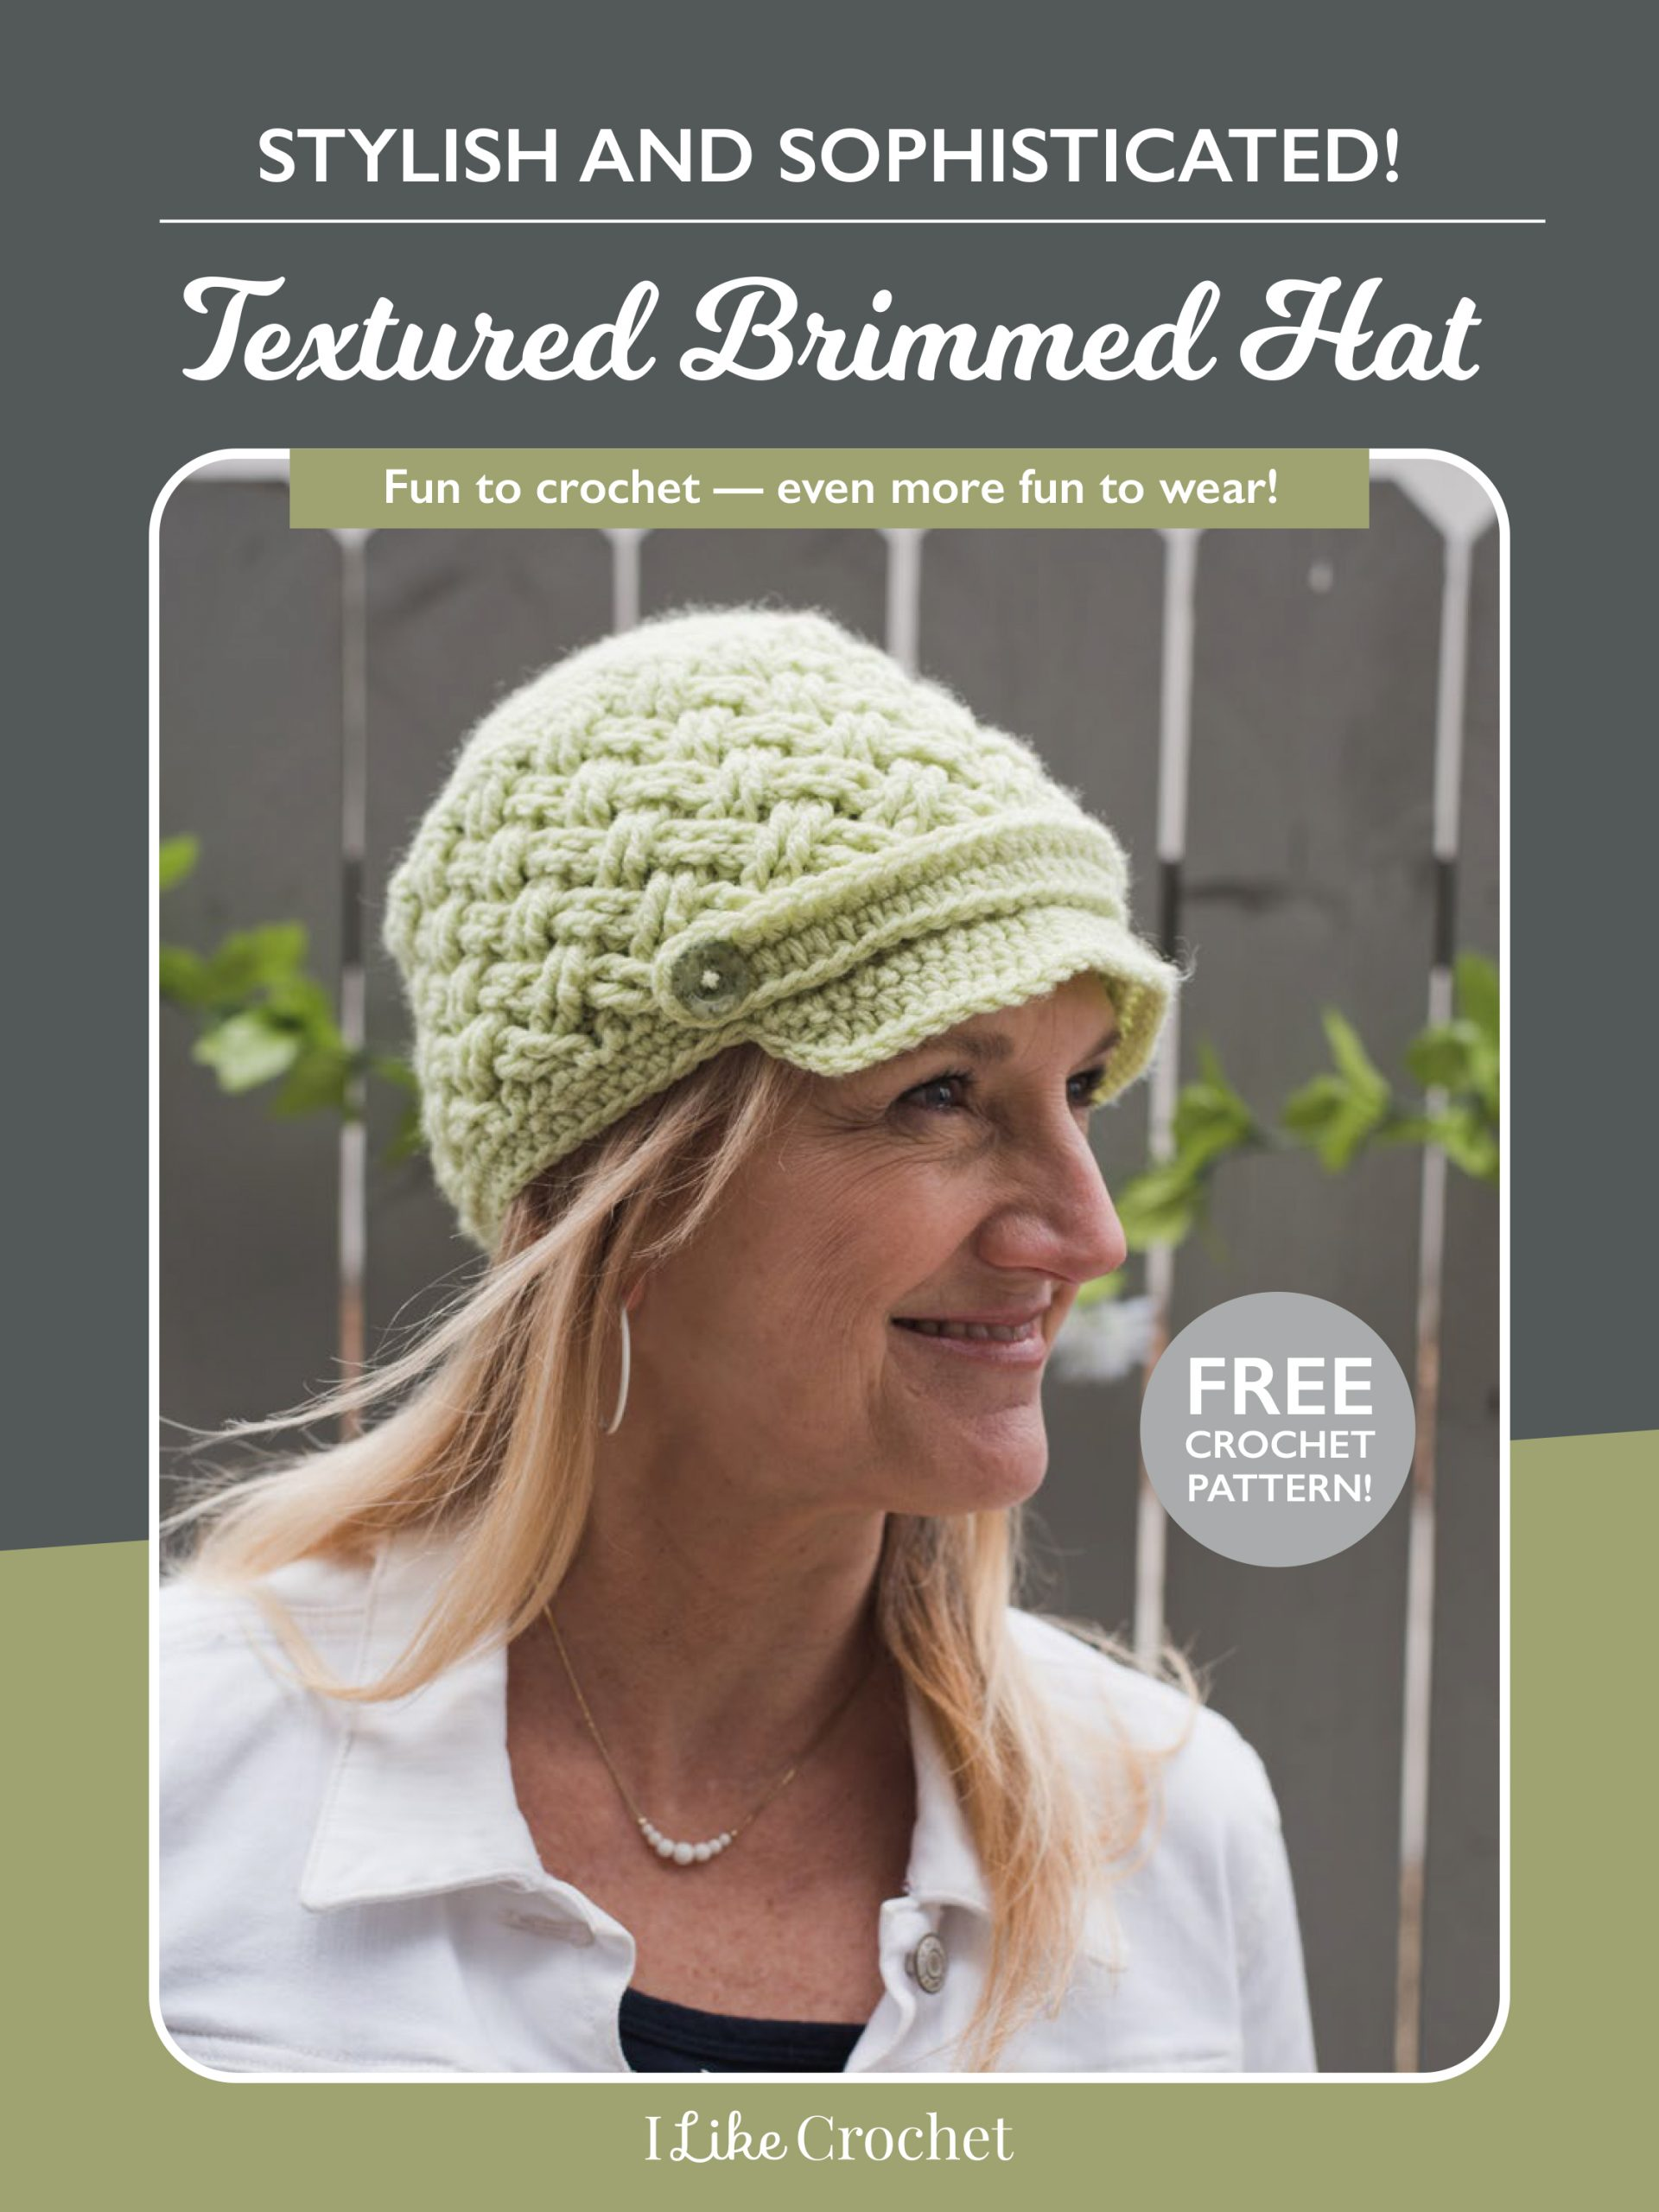 Brimming with Style: Free Crochet Hat Pattern